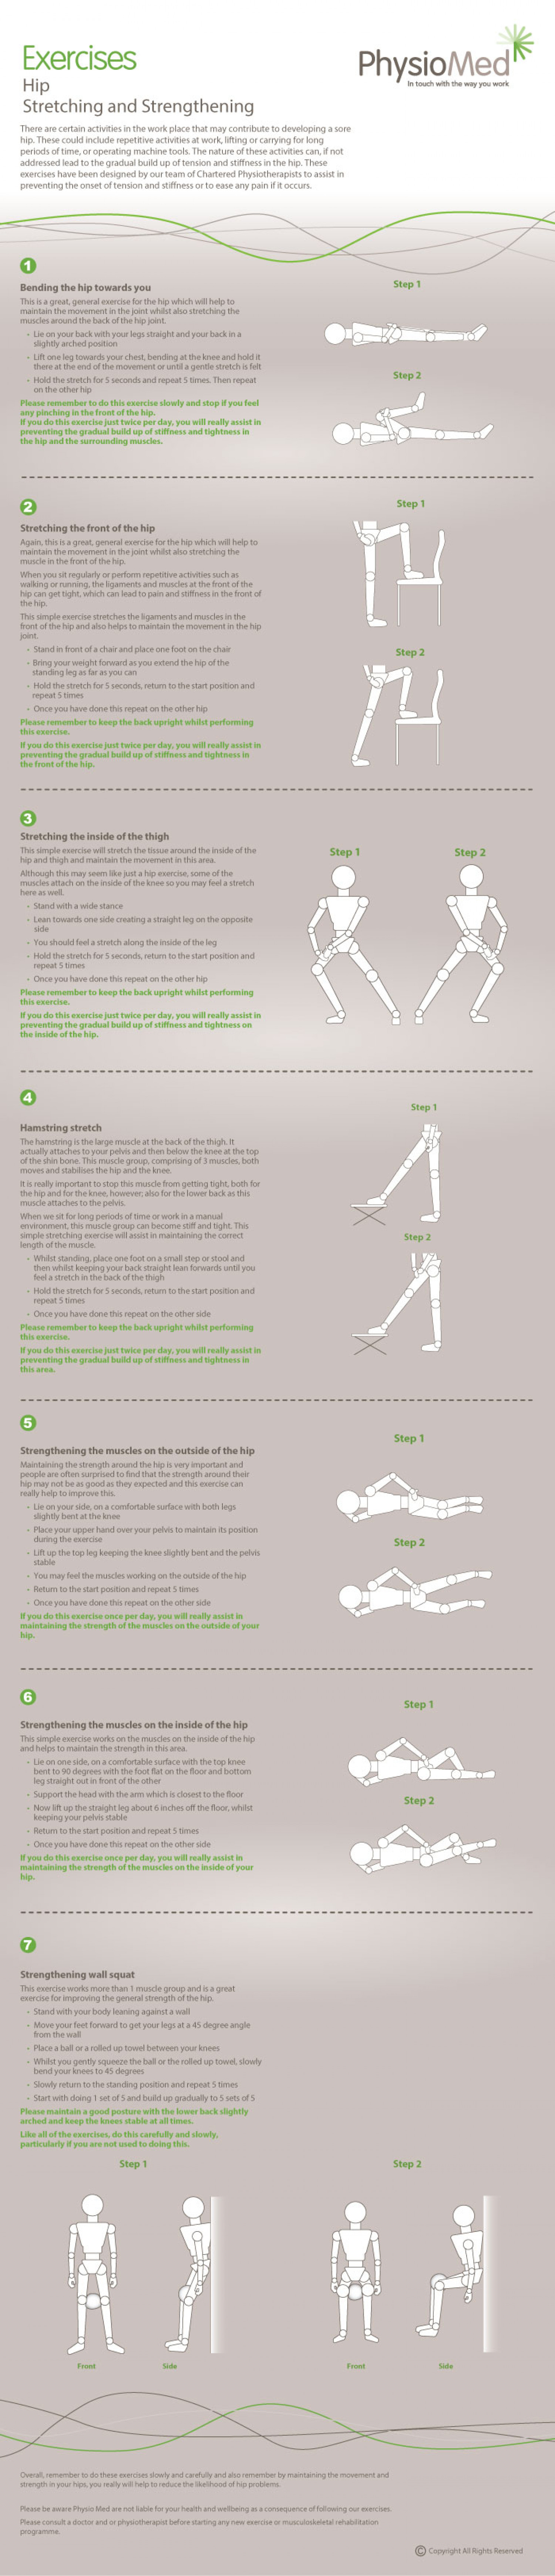 Hip Stretching and Strengthening Exercises - Occupational Physiotherapy: Physio Med Infographic